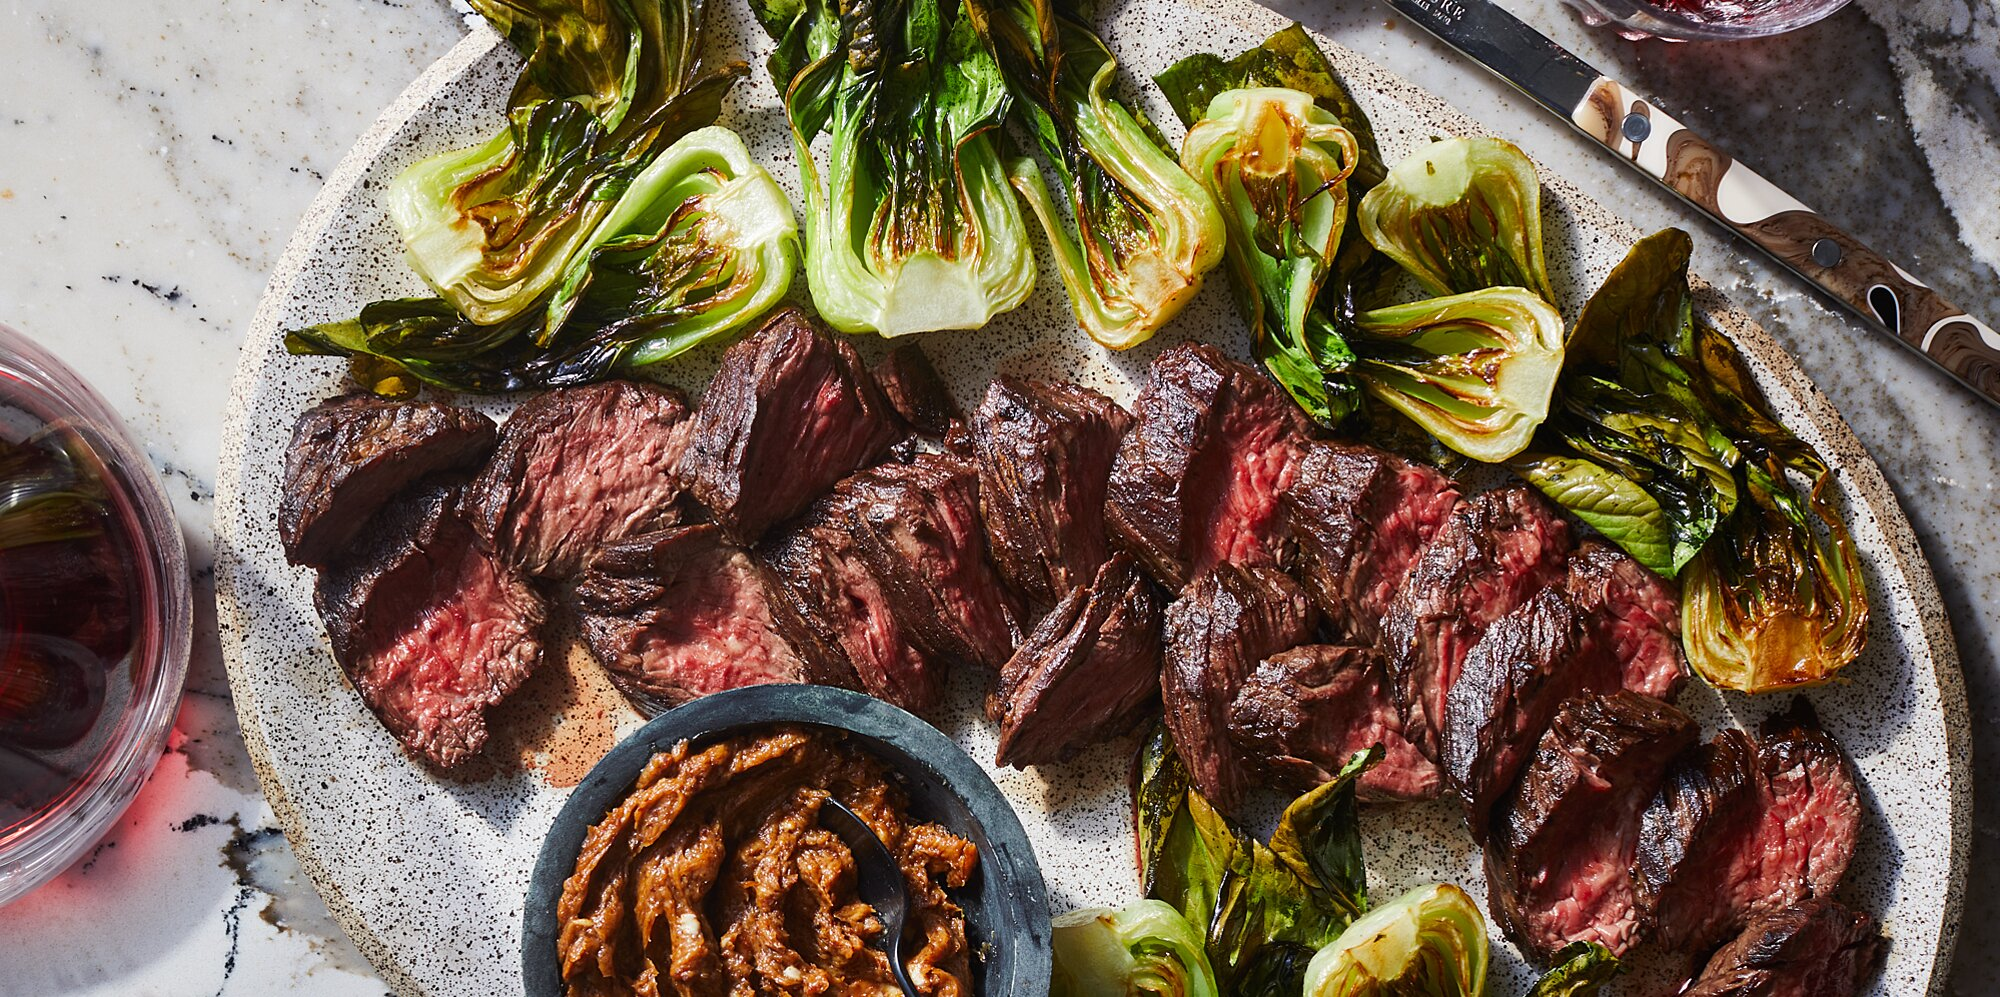 Sheet Pan Hanger Steak and Bok Choy with Lemon-Miso Butter Recipe